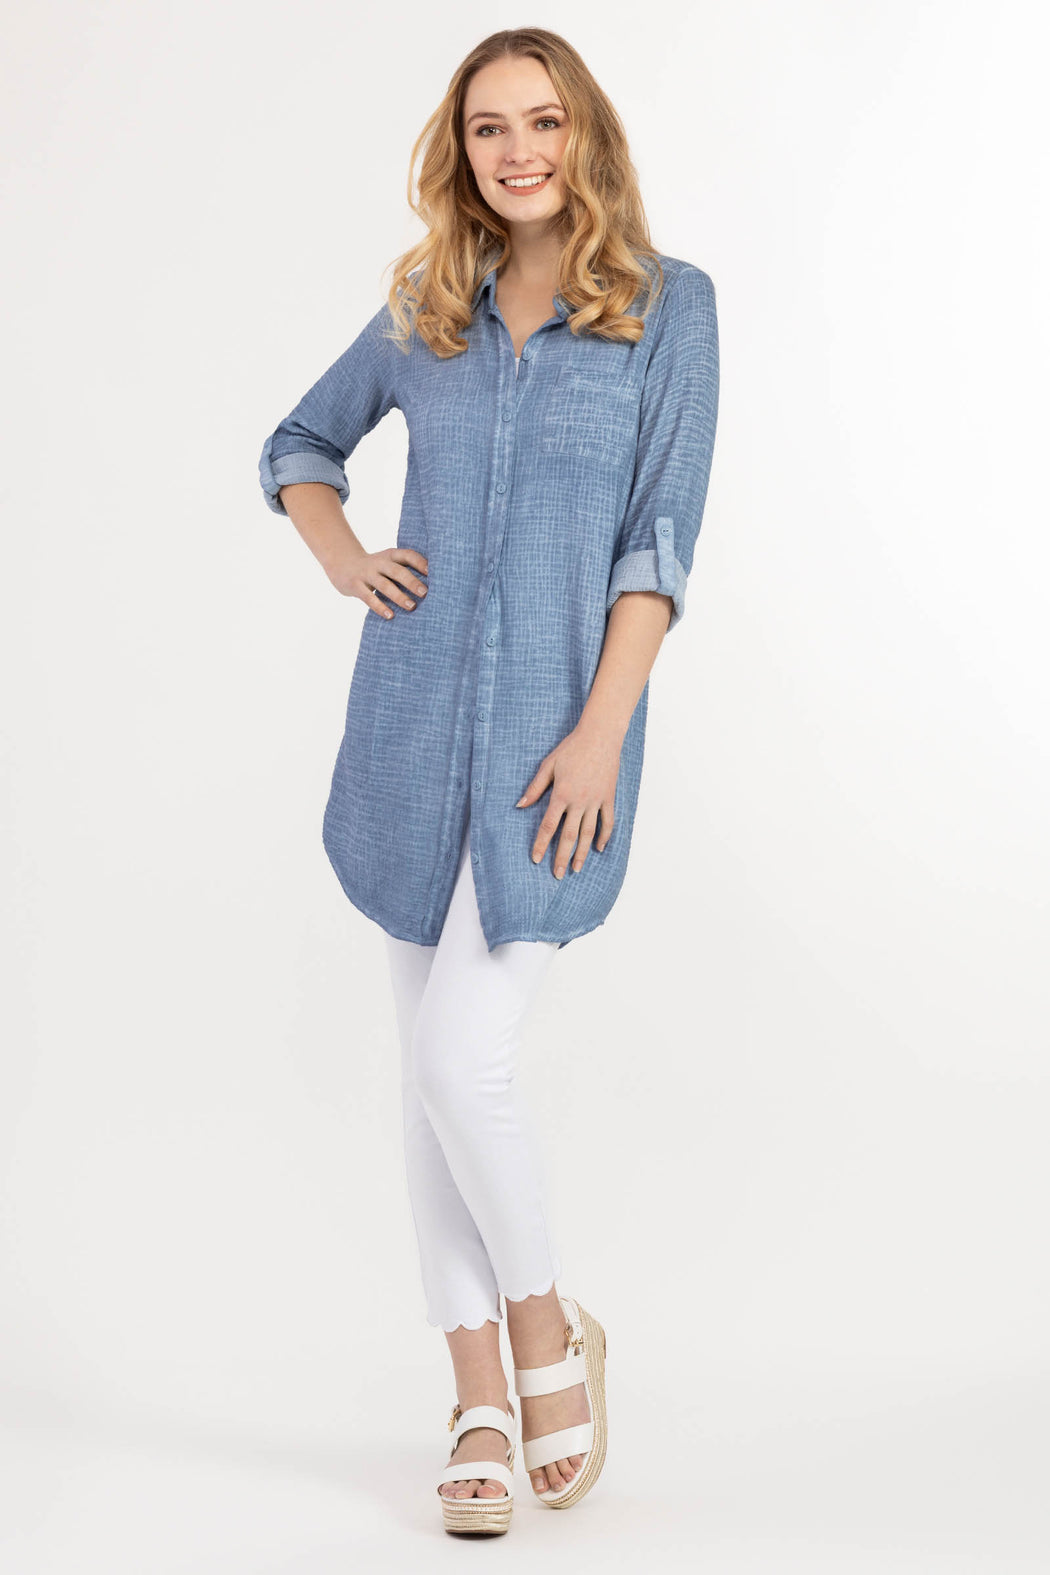 "No matter how you choose to wear it, you can't go wrong with our effortlessly chic menswear-inspired shirt dress. Try sporting this piece buttoned up with a belt at the waist for an ""urban fashionista"" vibe, or unbuttoned over a simple t-shirt and jeans for a more laid-back look.      100% Cotton     Adjustable sleeve     Crinkled gauze look     Pocket detail     Mid-thigh length     Machine wash delicate cycle cold water, line dry"